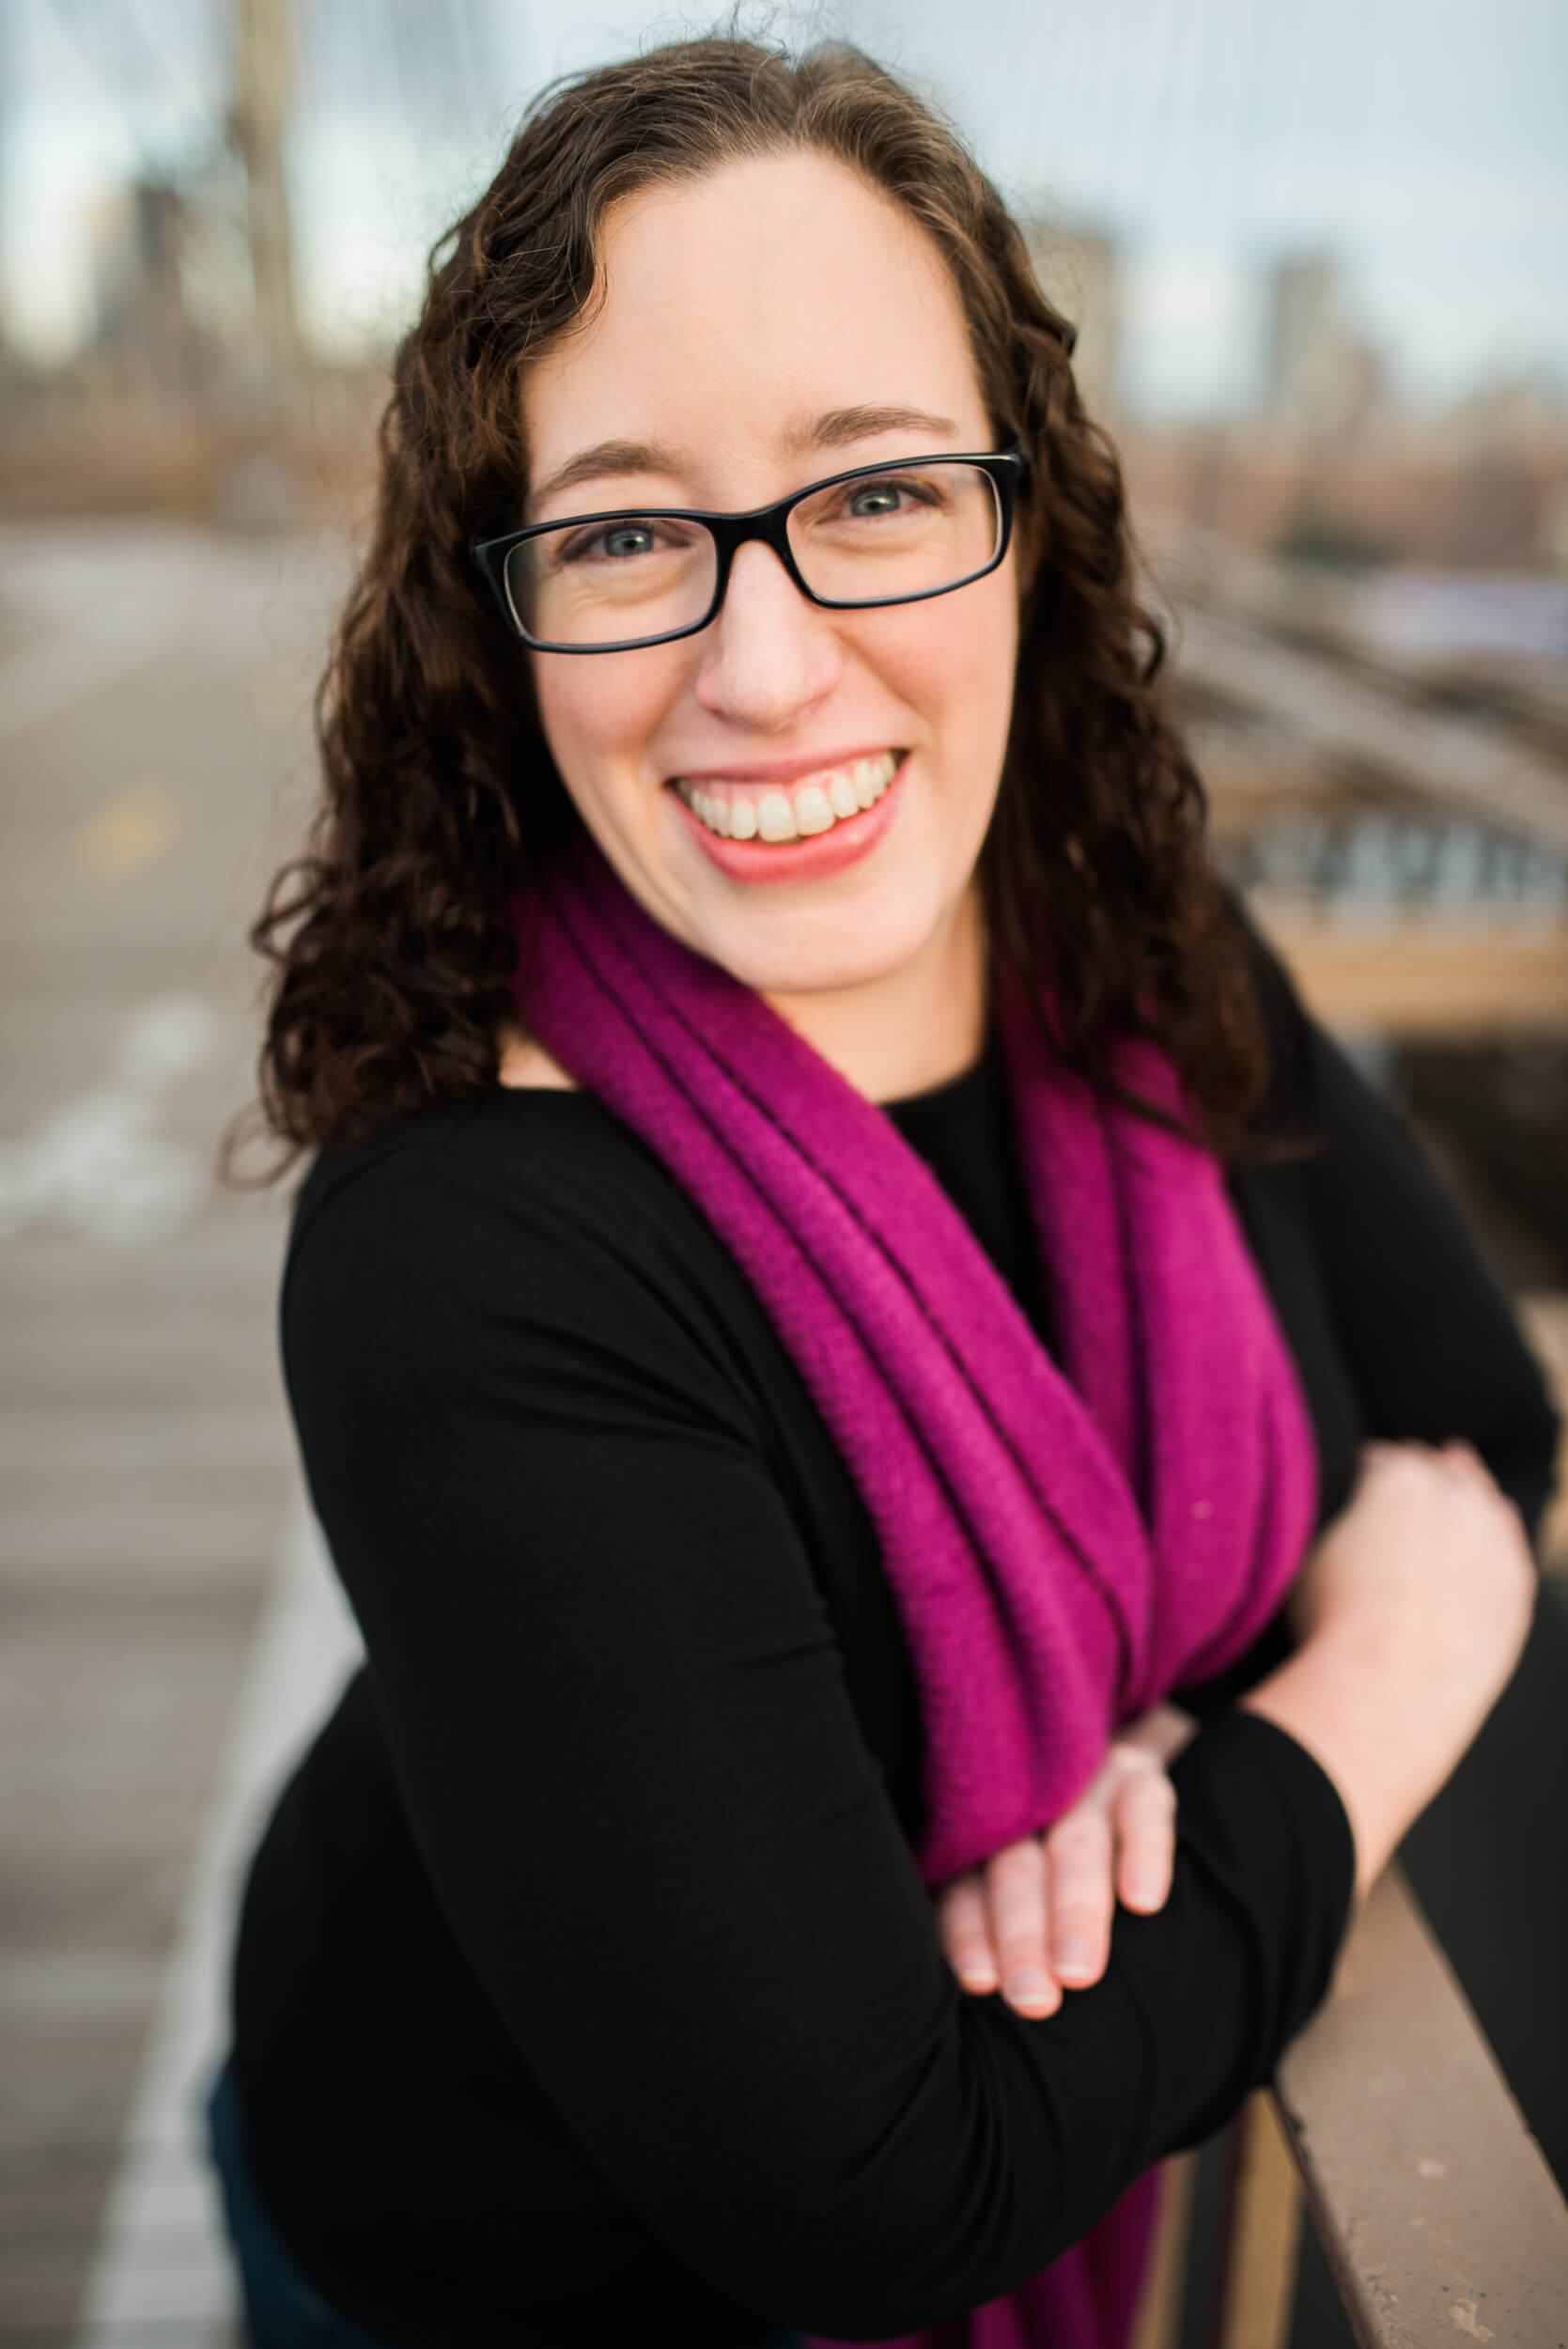 Kathleen Smith Tessitura database specialist at the Intrepid Museum in NY headshot on Brooklyn Bridge at sunrise by Lindsey Victoria Photography